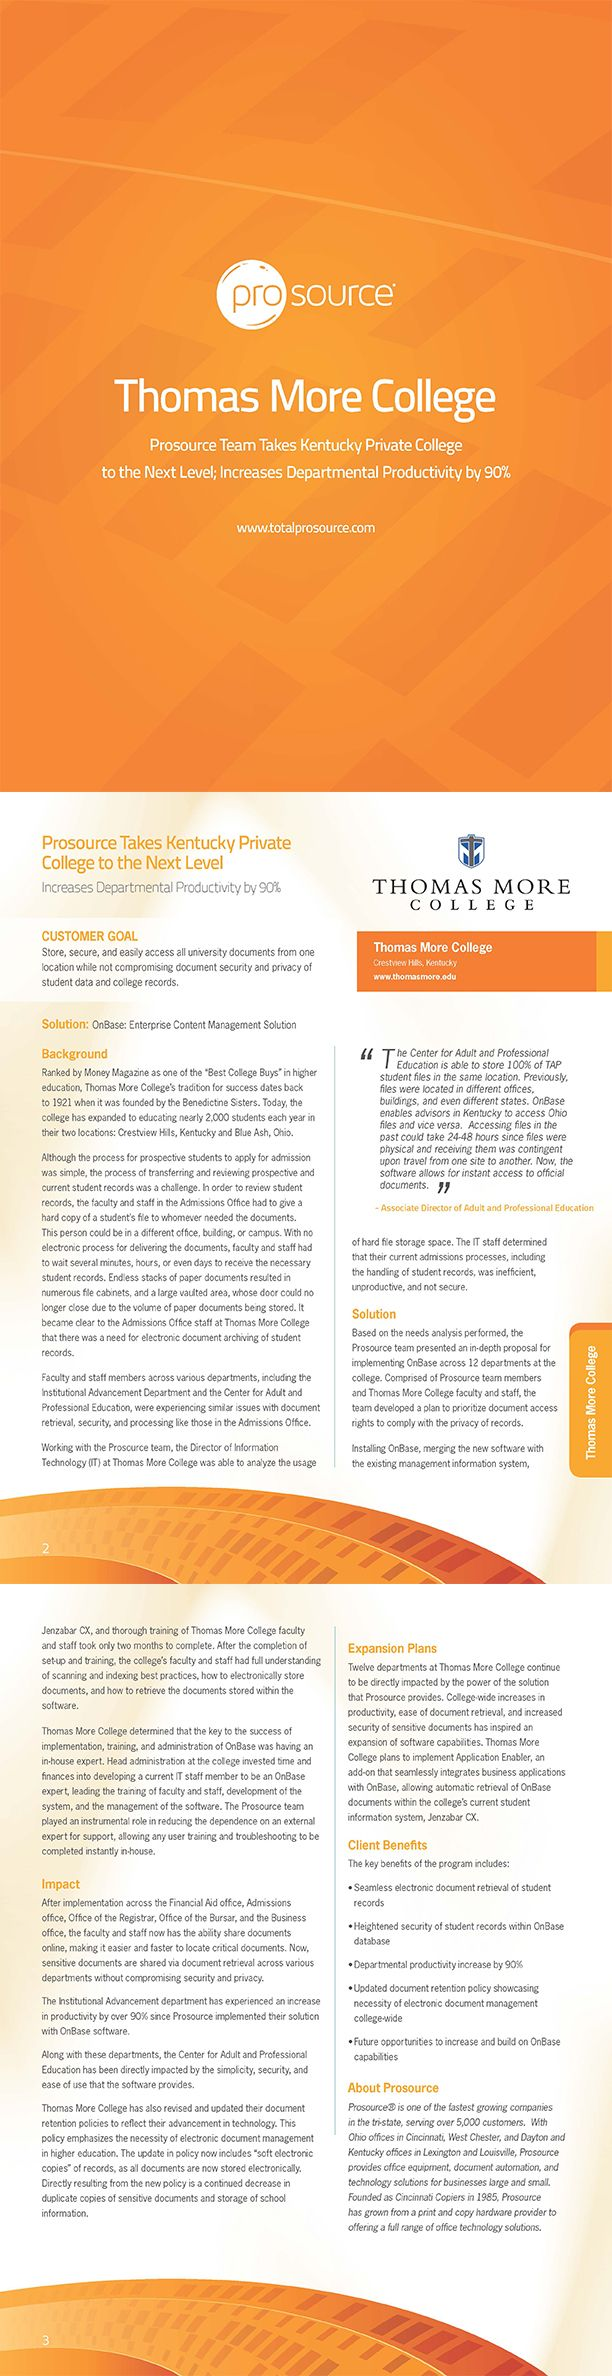 Prosource team increased departmental #productivity by 90% at Thomas More College by converting endless stacks of paper #documents and multiple file cabinets filled with student records into one, seamless system of #electronic documents. #workflow   #software  #OnBase